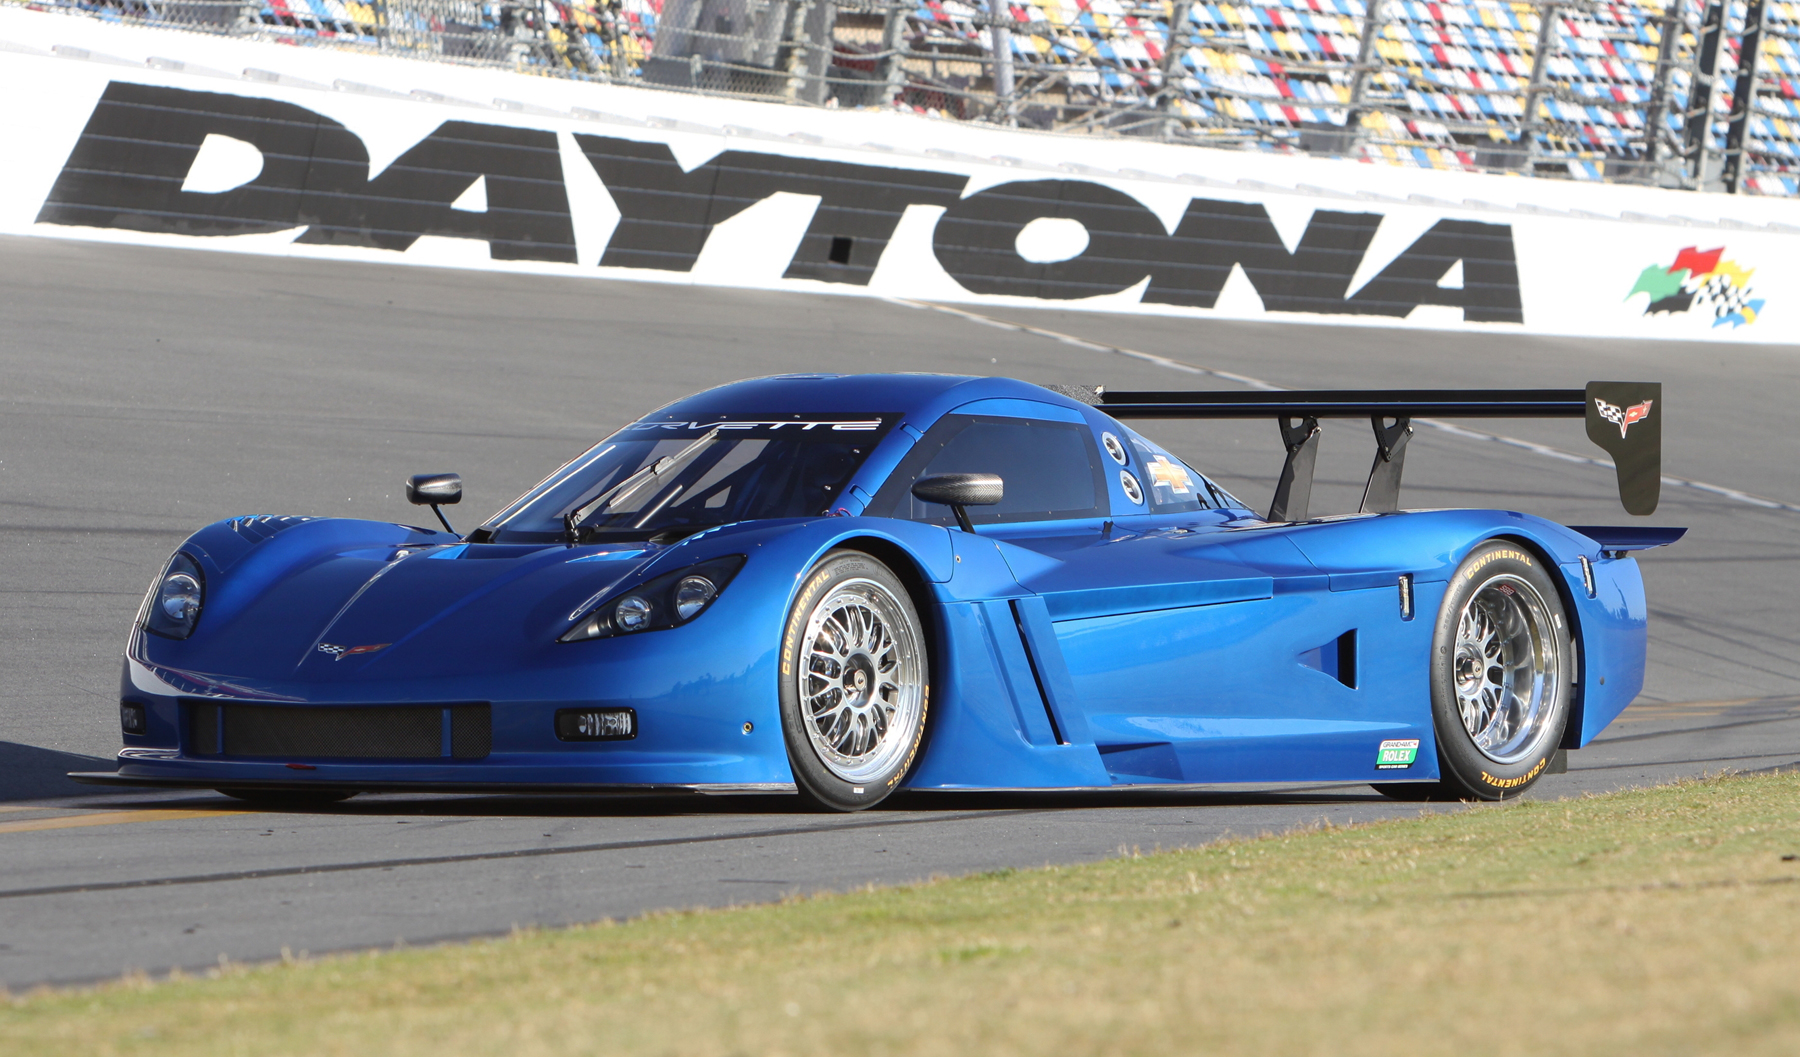 Acura Exotic Car >> Corvette Daytona Prototypes For 50th Anniversary Rolex 24 At Daytona